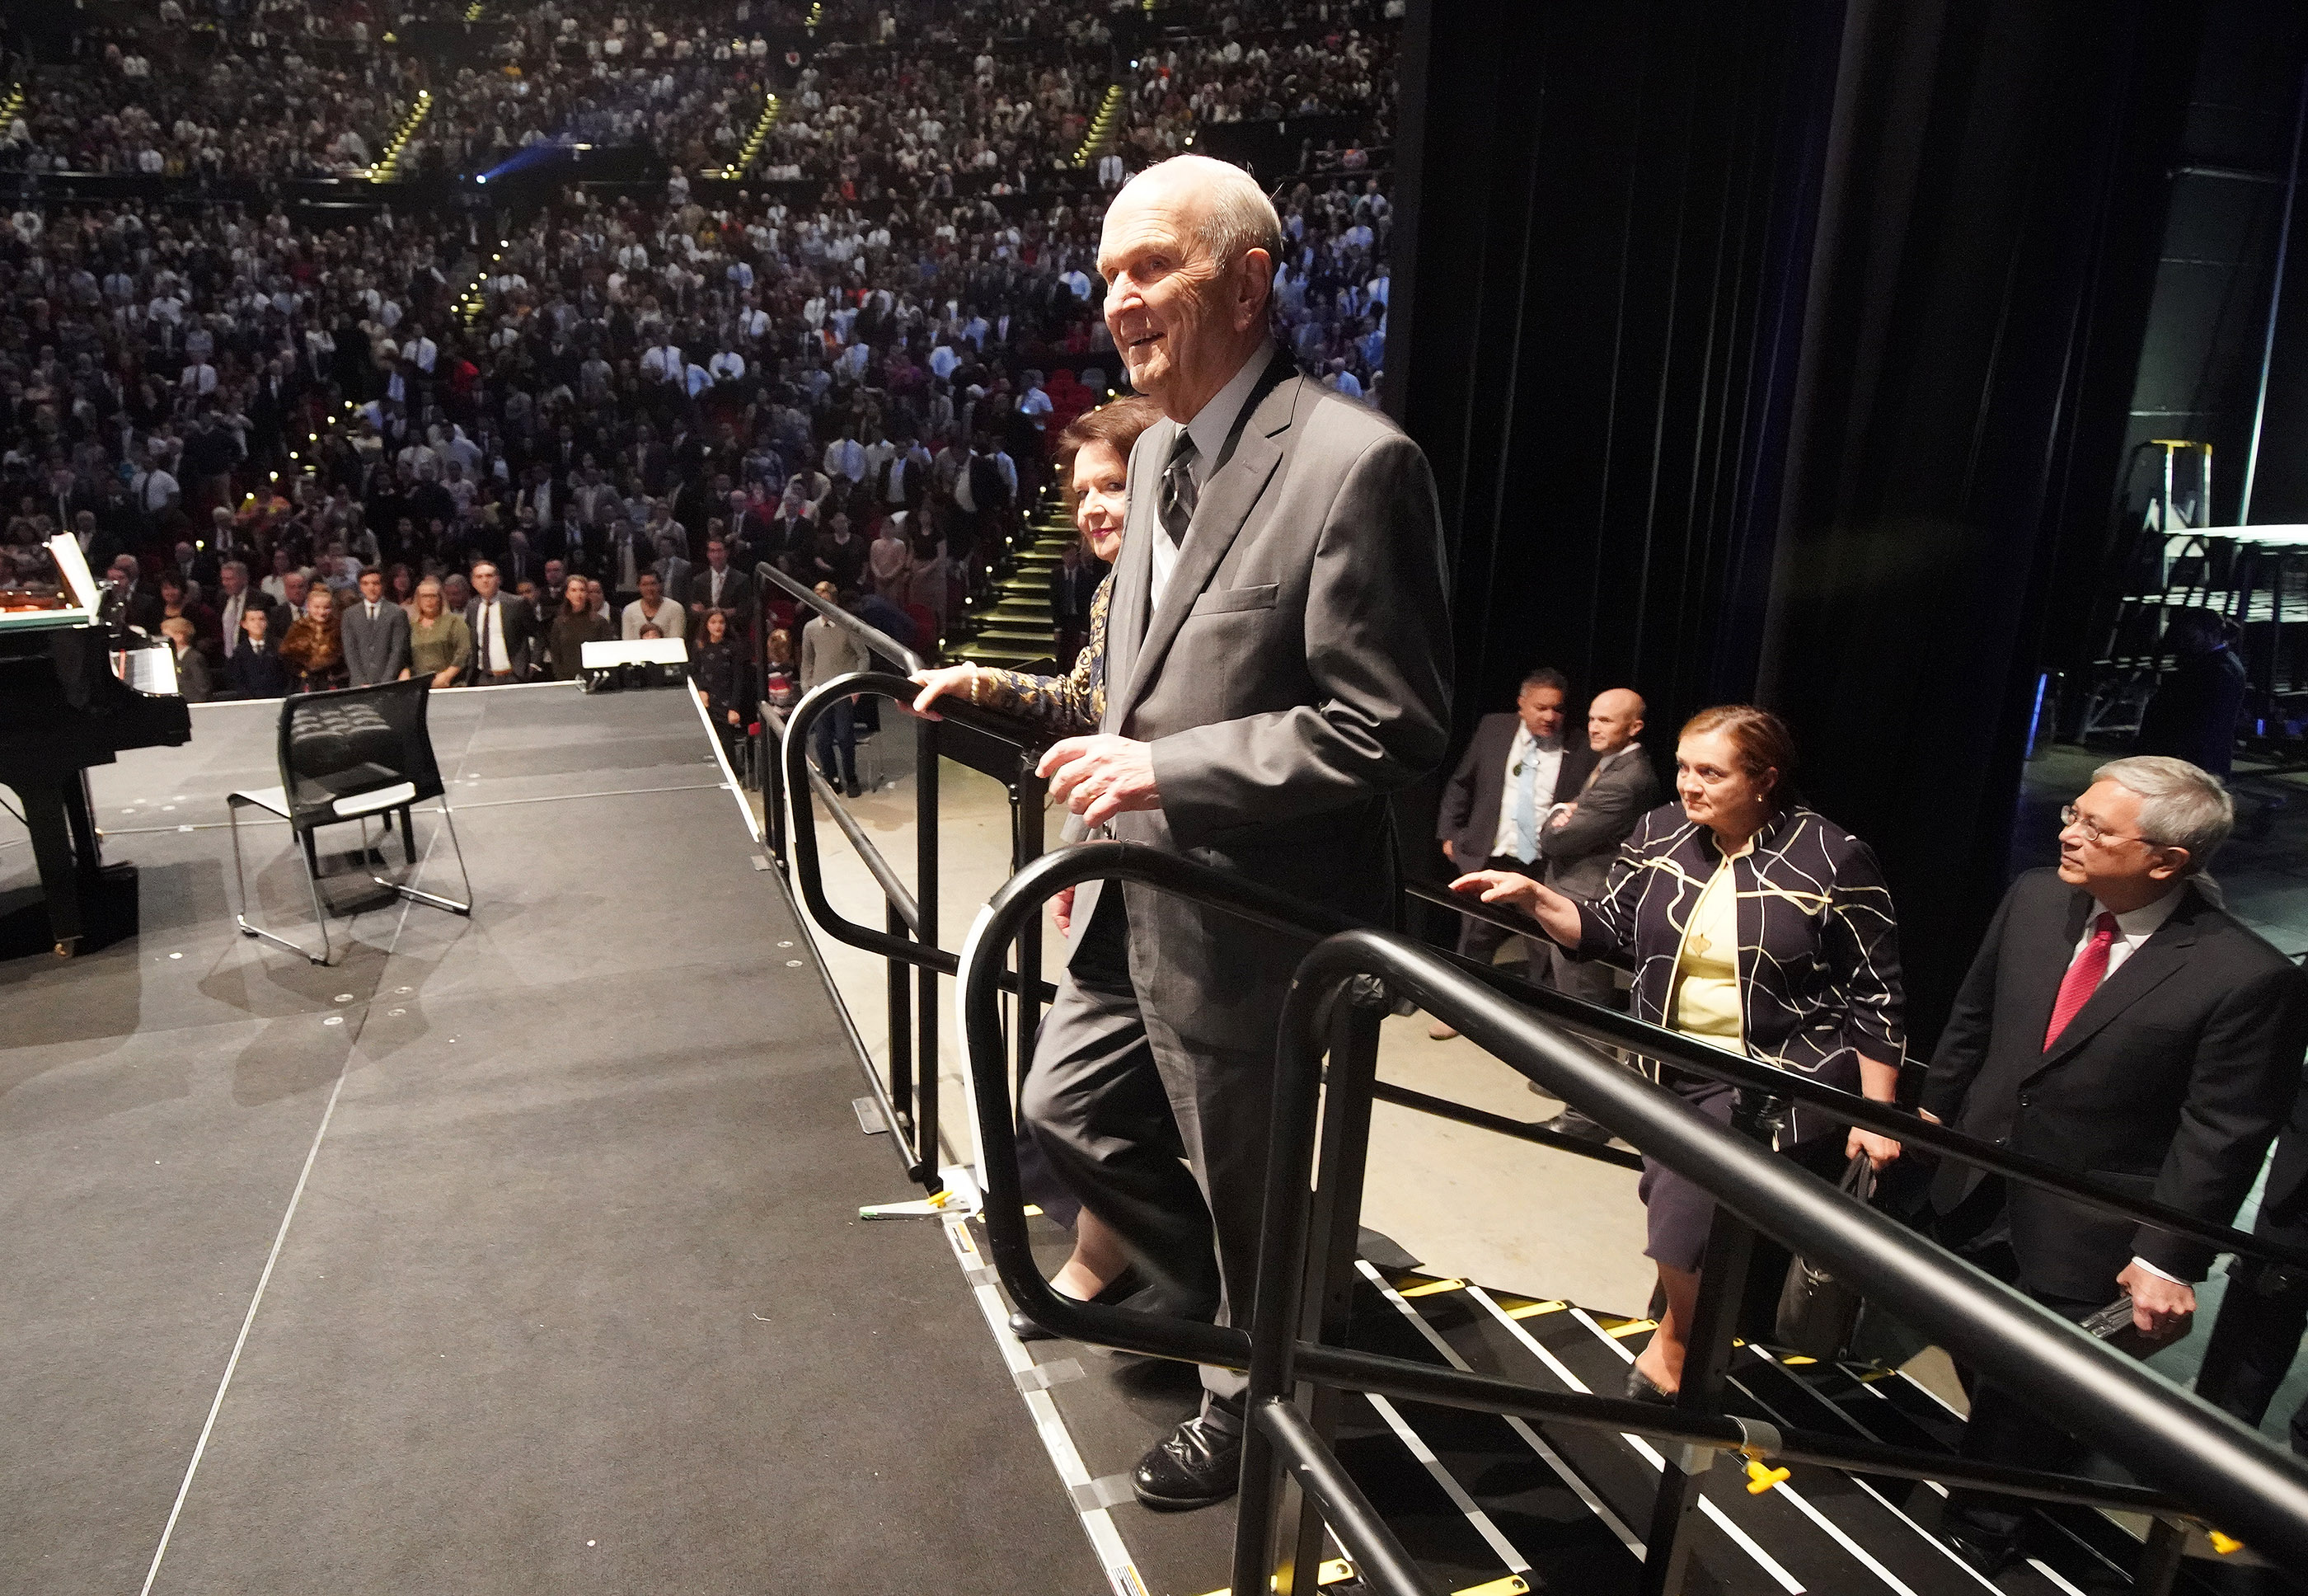 President Russell M. Nelson of The Church of Jesus Christ of Latter-day Saints and his wife, Sister Wendy Nelson, walk on stage at the International Conference Center to speak on May 19, 2019, in Sydney, Australia. Elder Elder Gerrit W. Gong, of The Church of Jesus Christ of Latter-day Saints' Quorum of the Twelve Apostles, and his wife, Sister Susan Gong, follow.